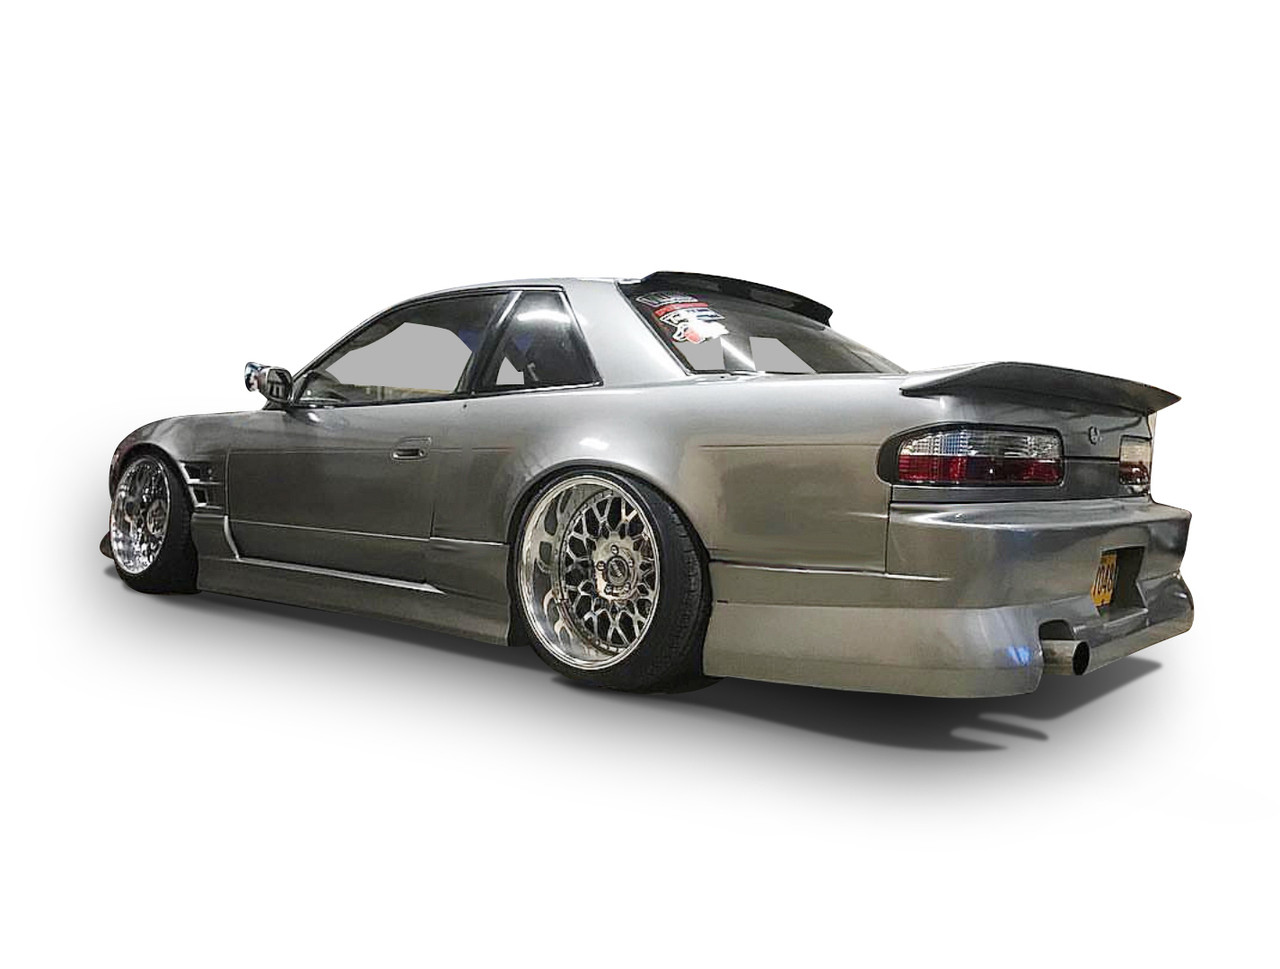 Nissan 240SX S13 Coupe / Convertible (Pop Up) 1989-1994 Bsport Style 4  Piece Polyurethane Full Body Kit